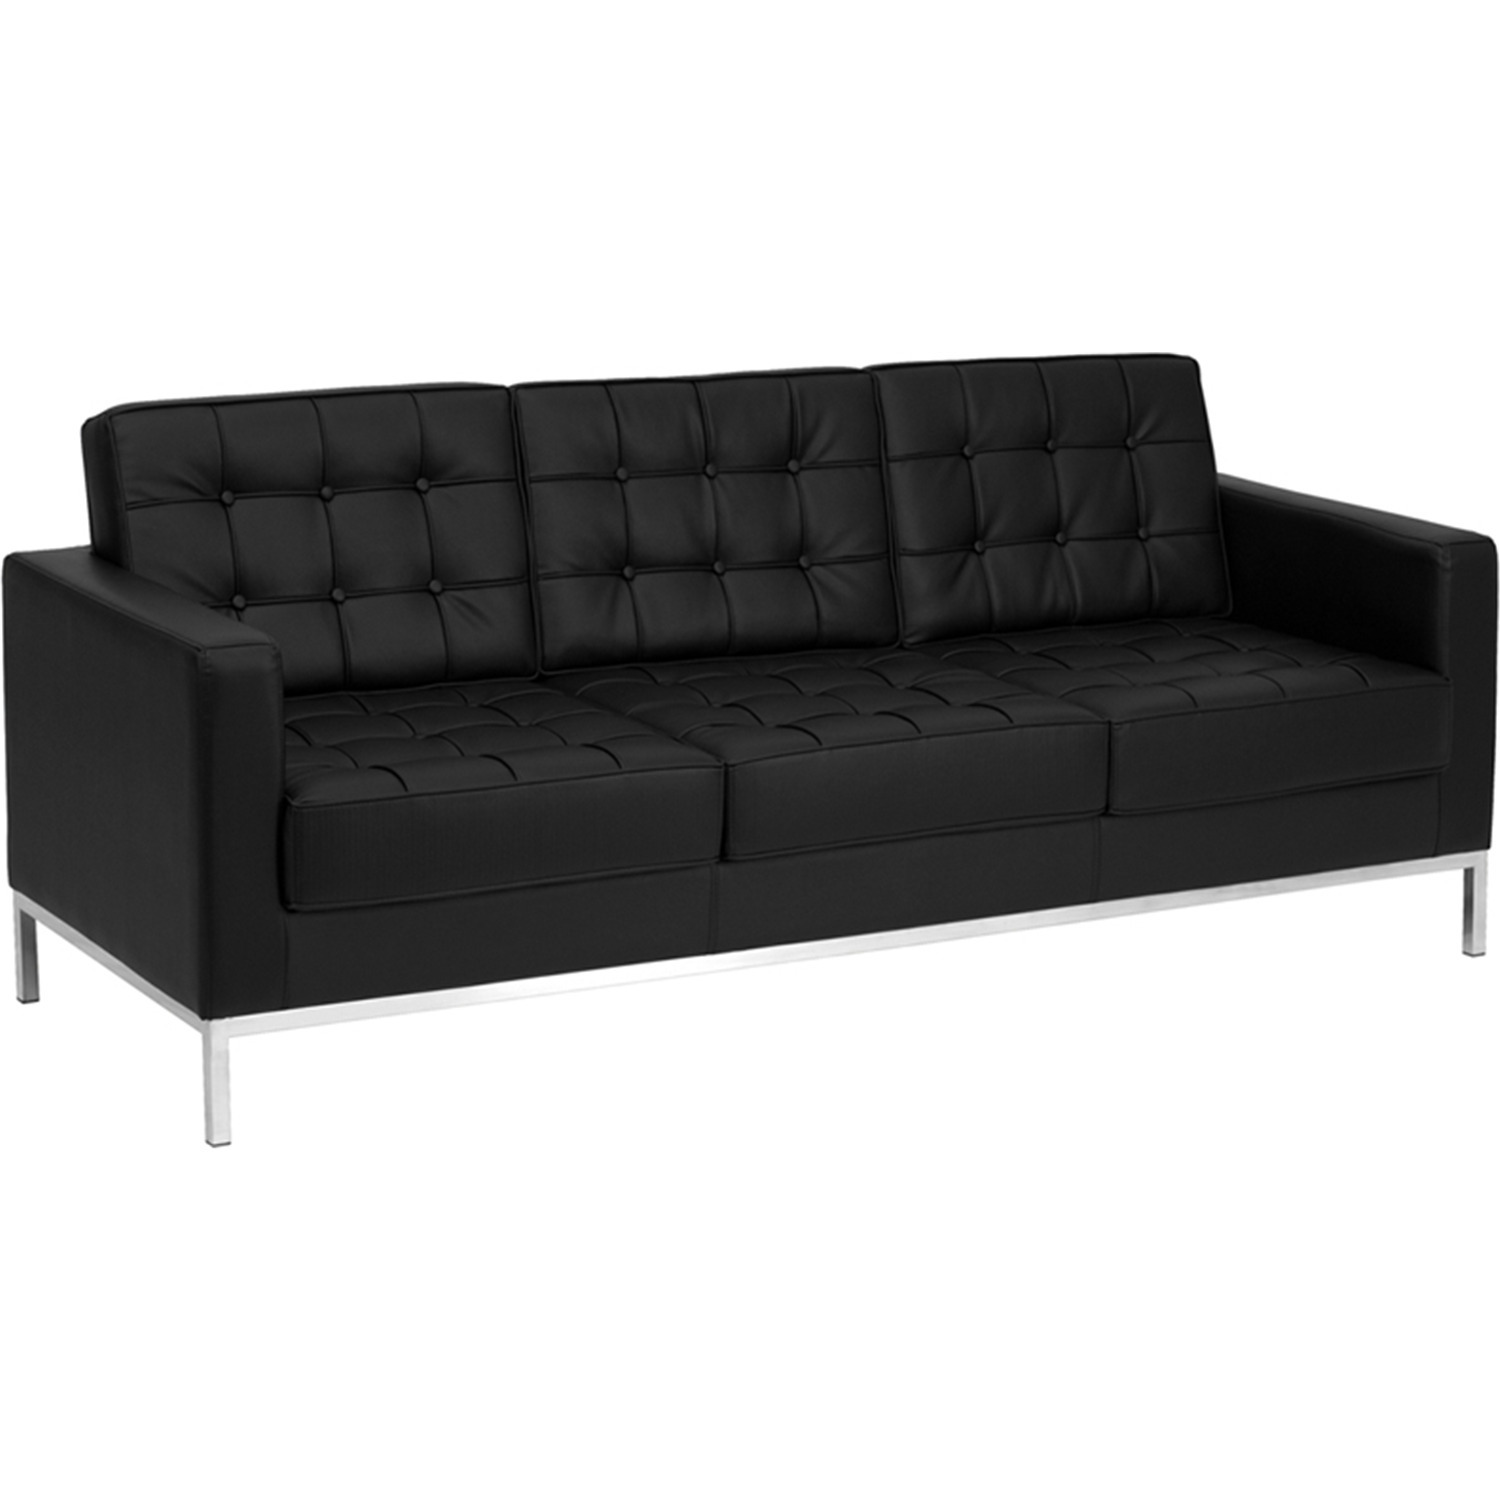 Flash furniture hercules lacey series contemporary black leather sofa with stainless steel frame Contemporary leather sofa